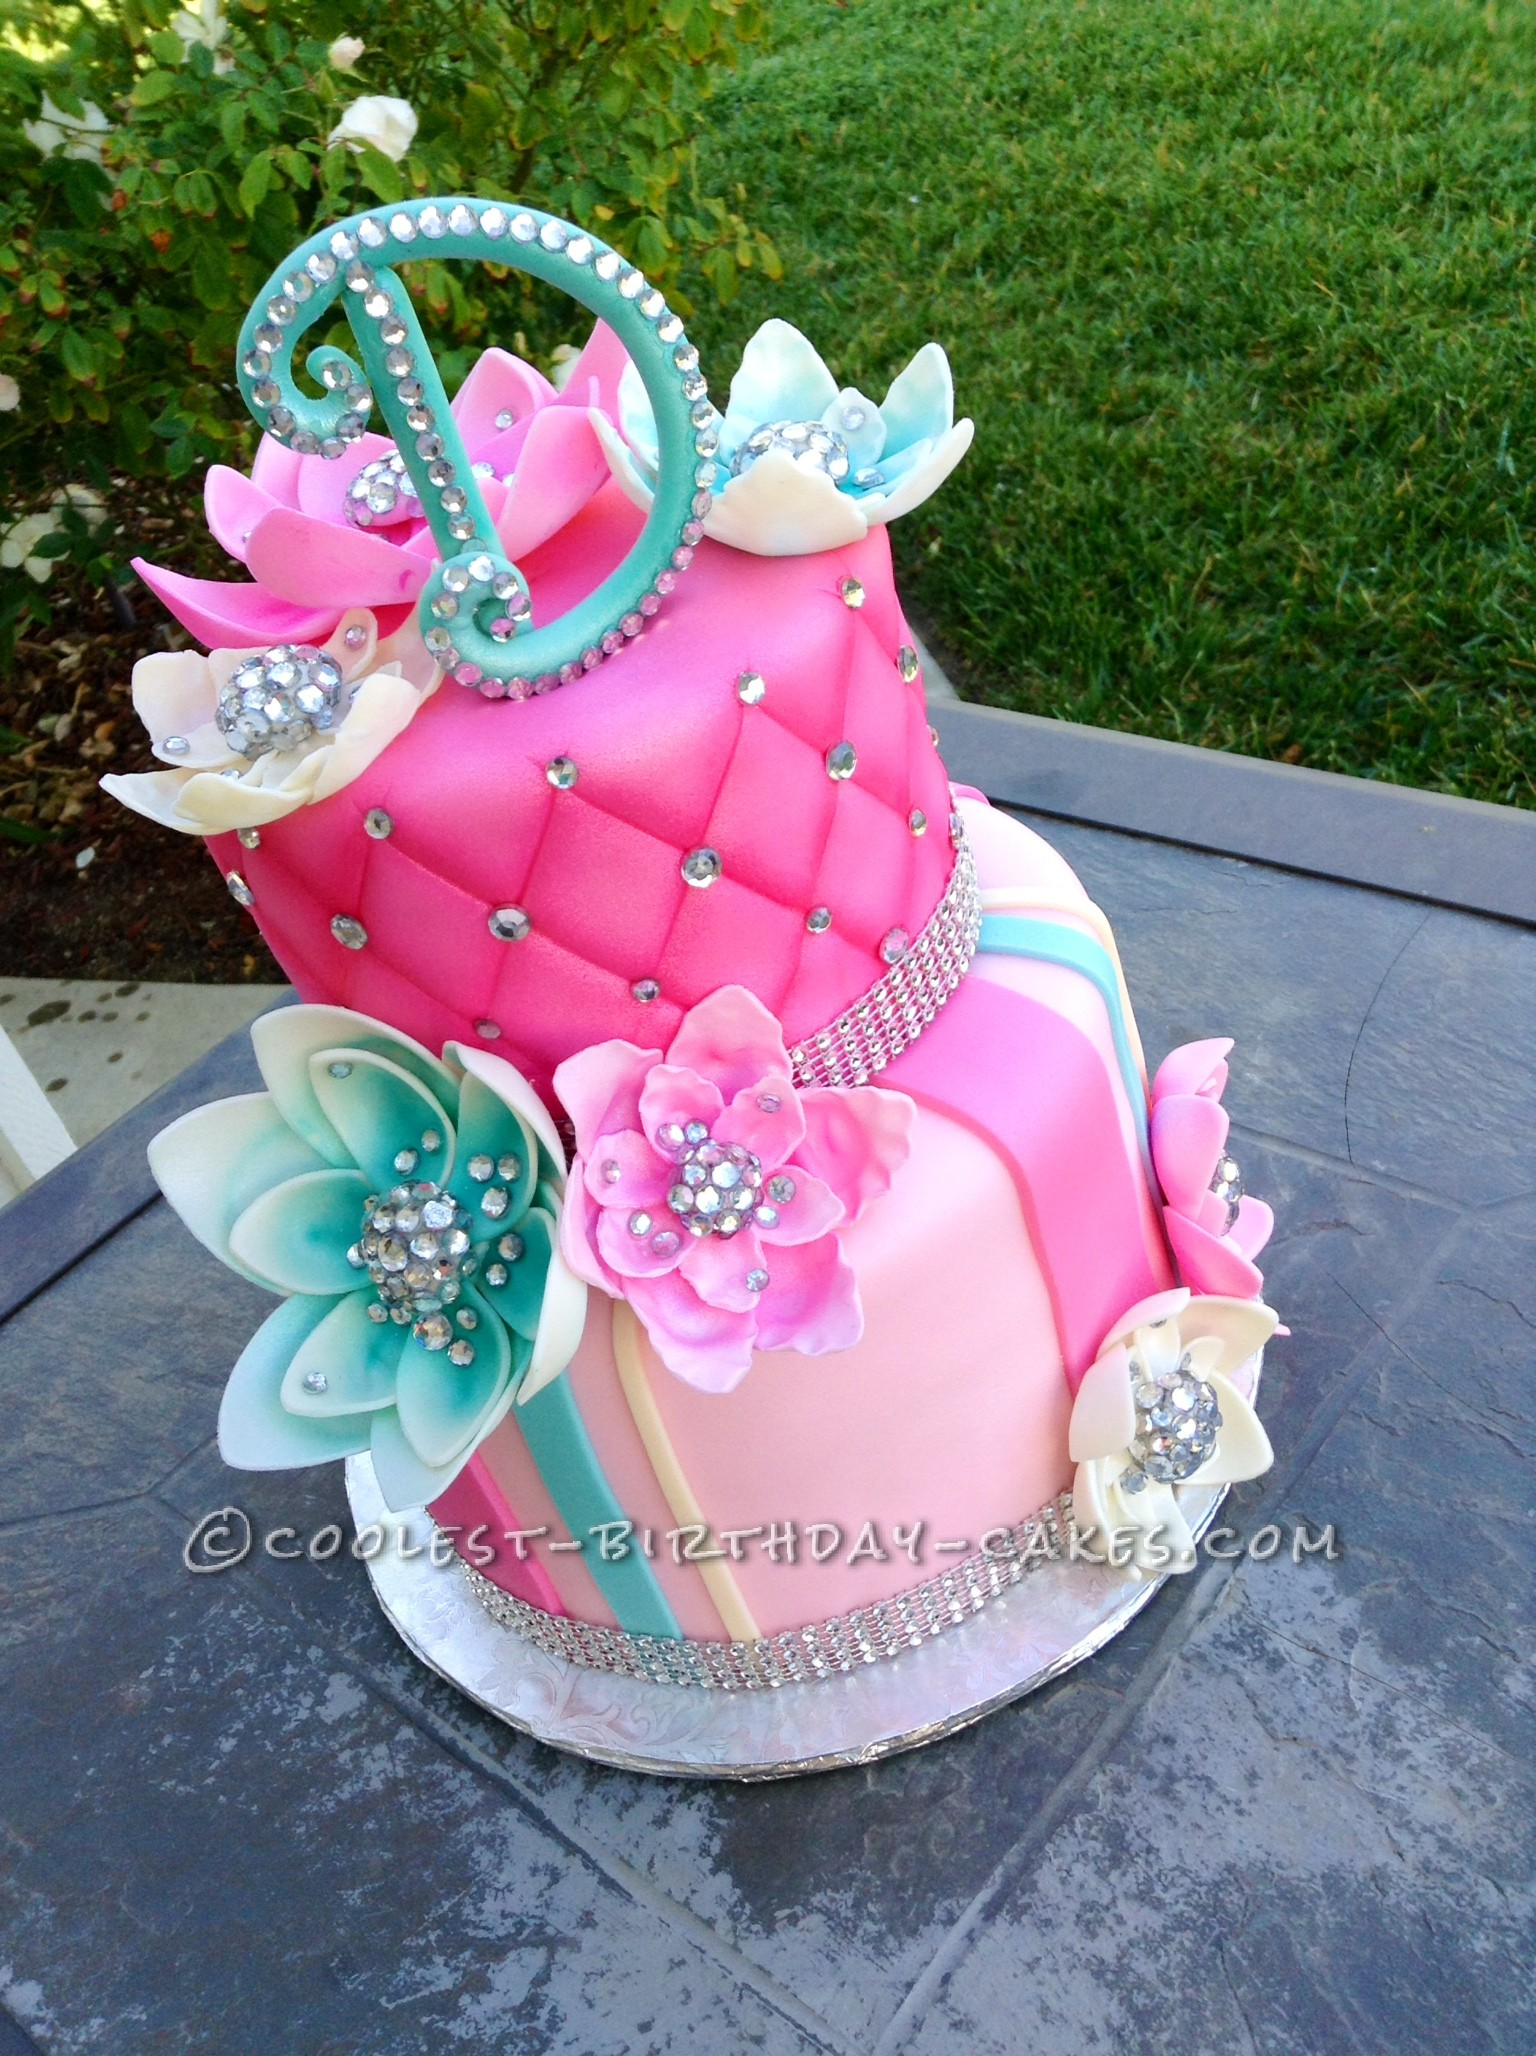 Delicious Homemade Beautiful Birthday Cake With Bling